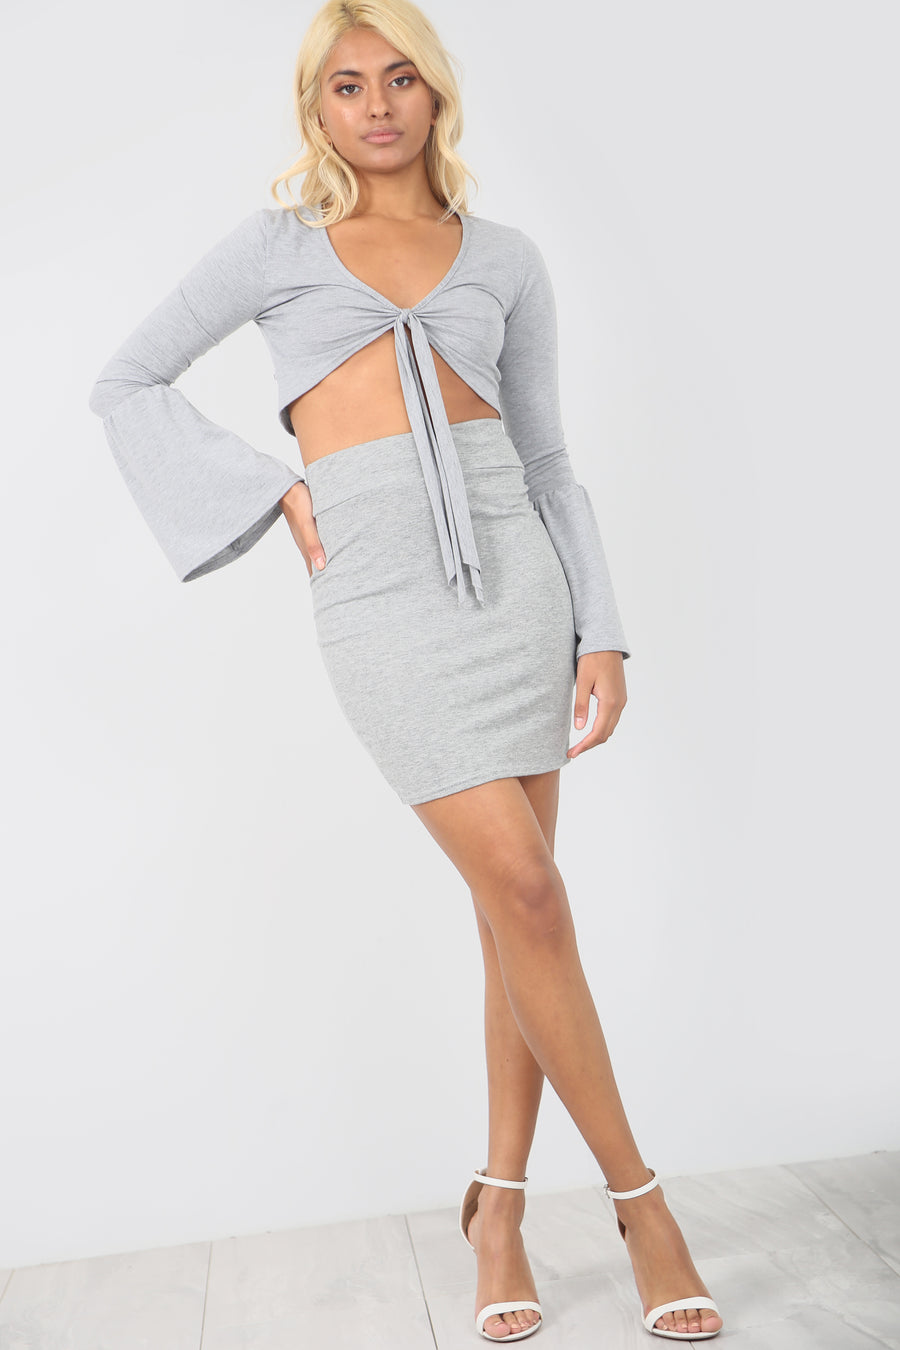 High Waist Basic Jersey Grey Mini Skirt - bejealous-com